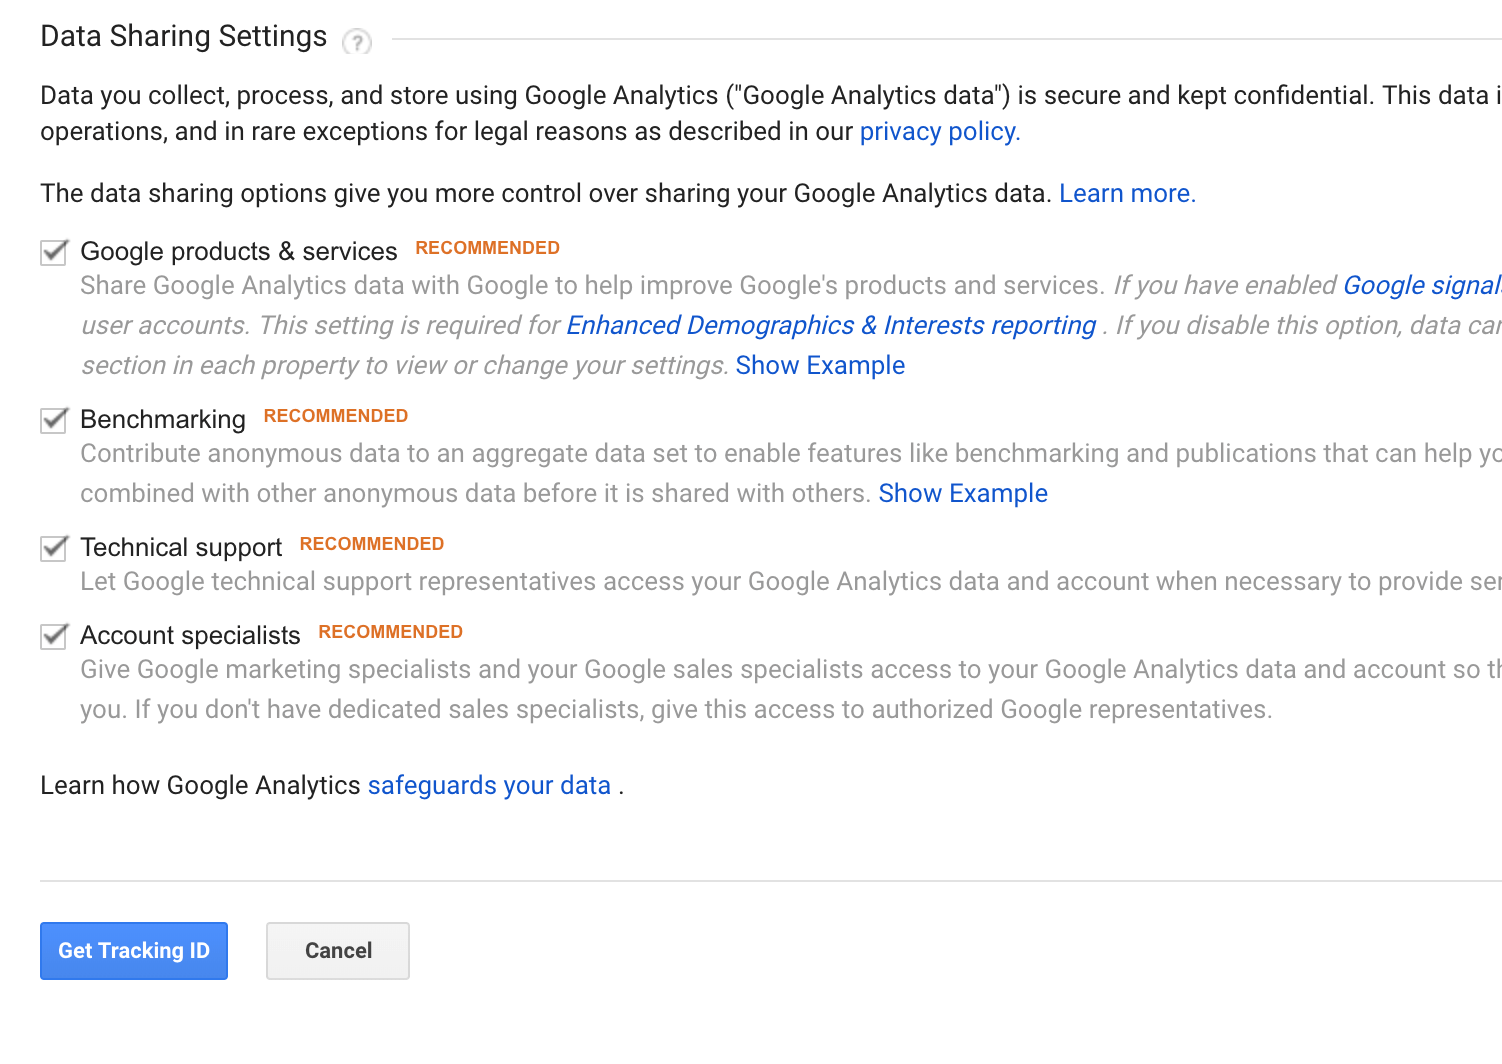 Google Analytics data settings